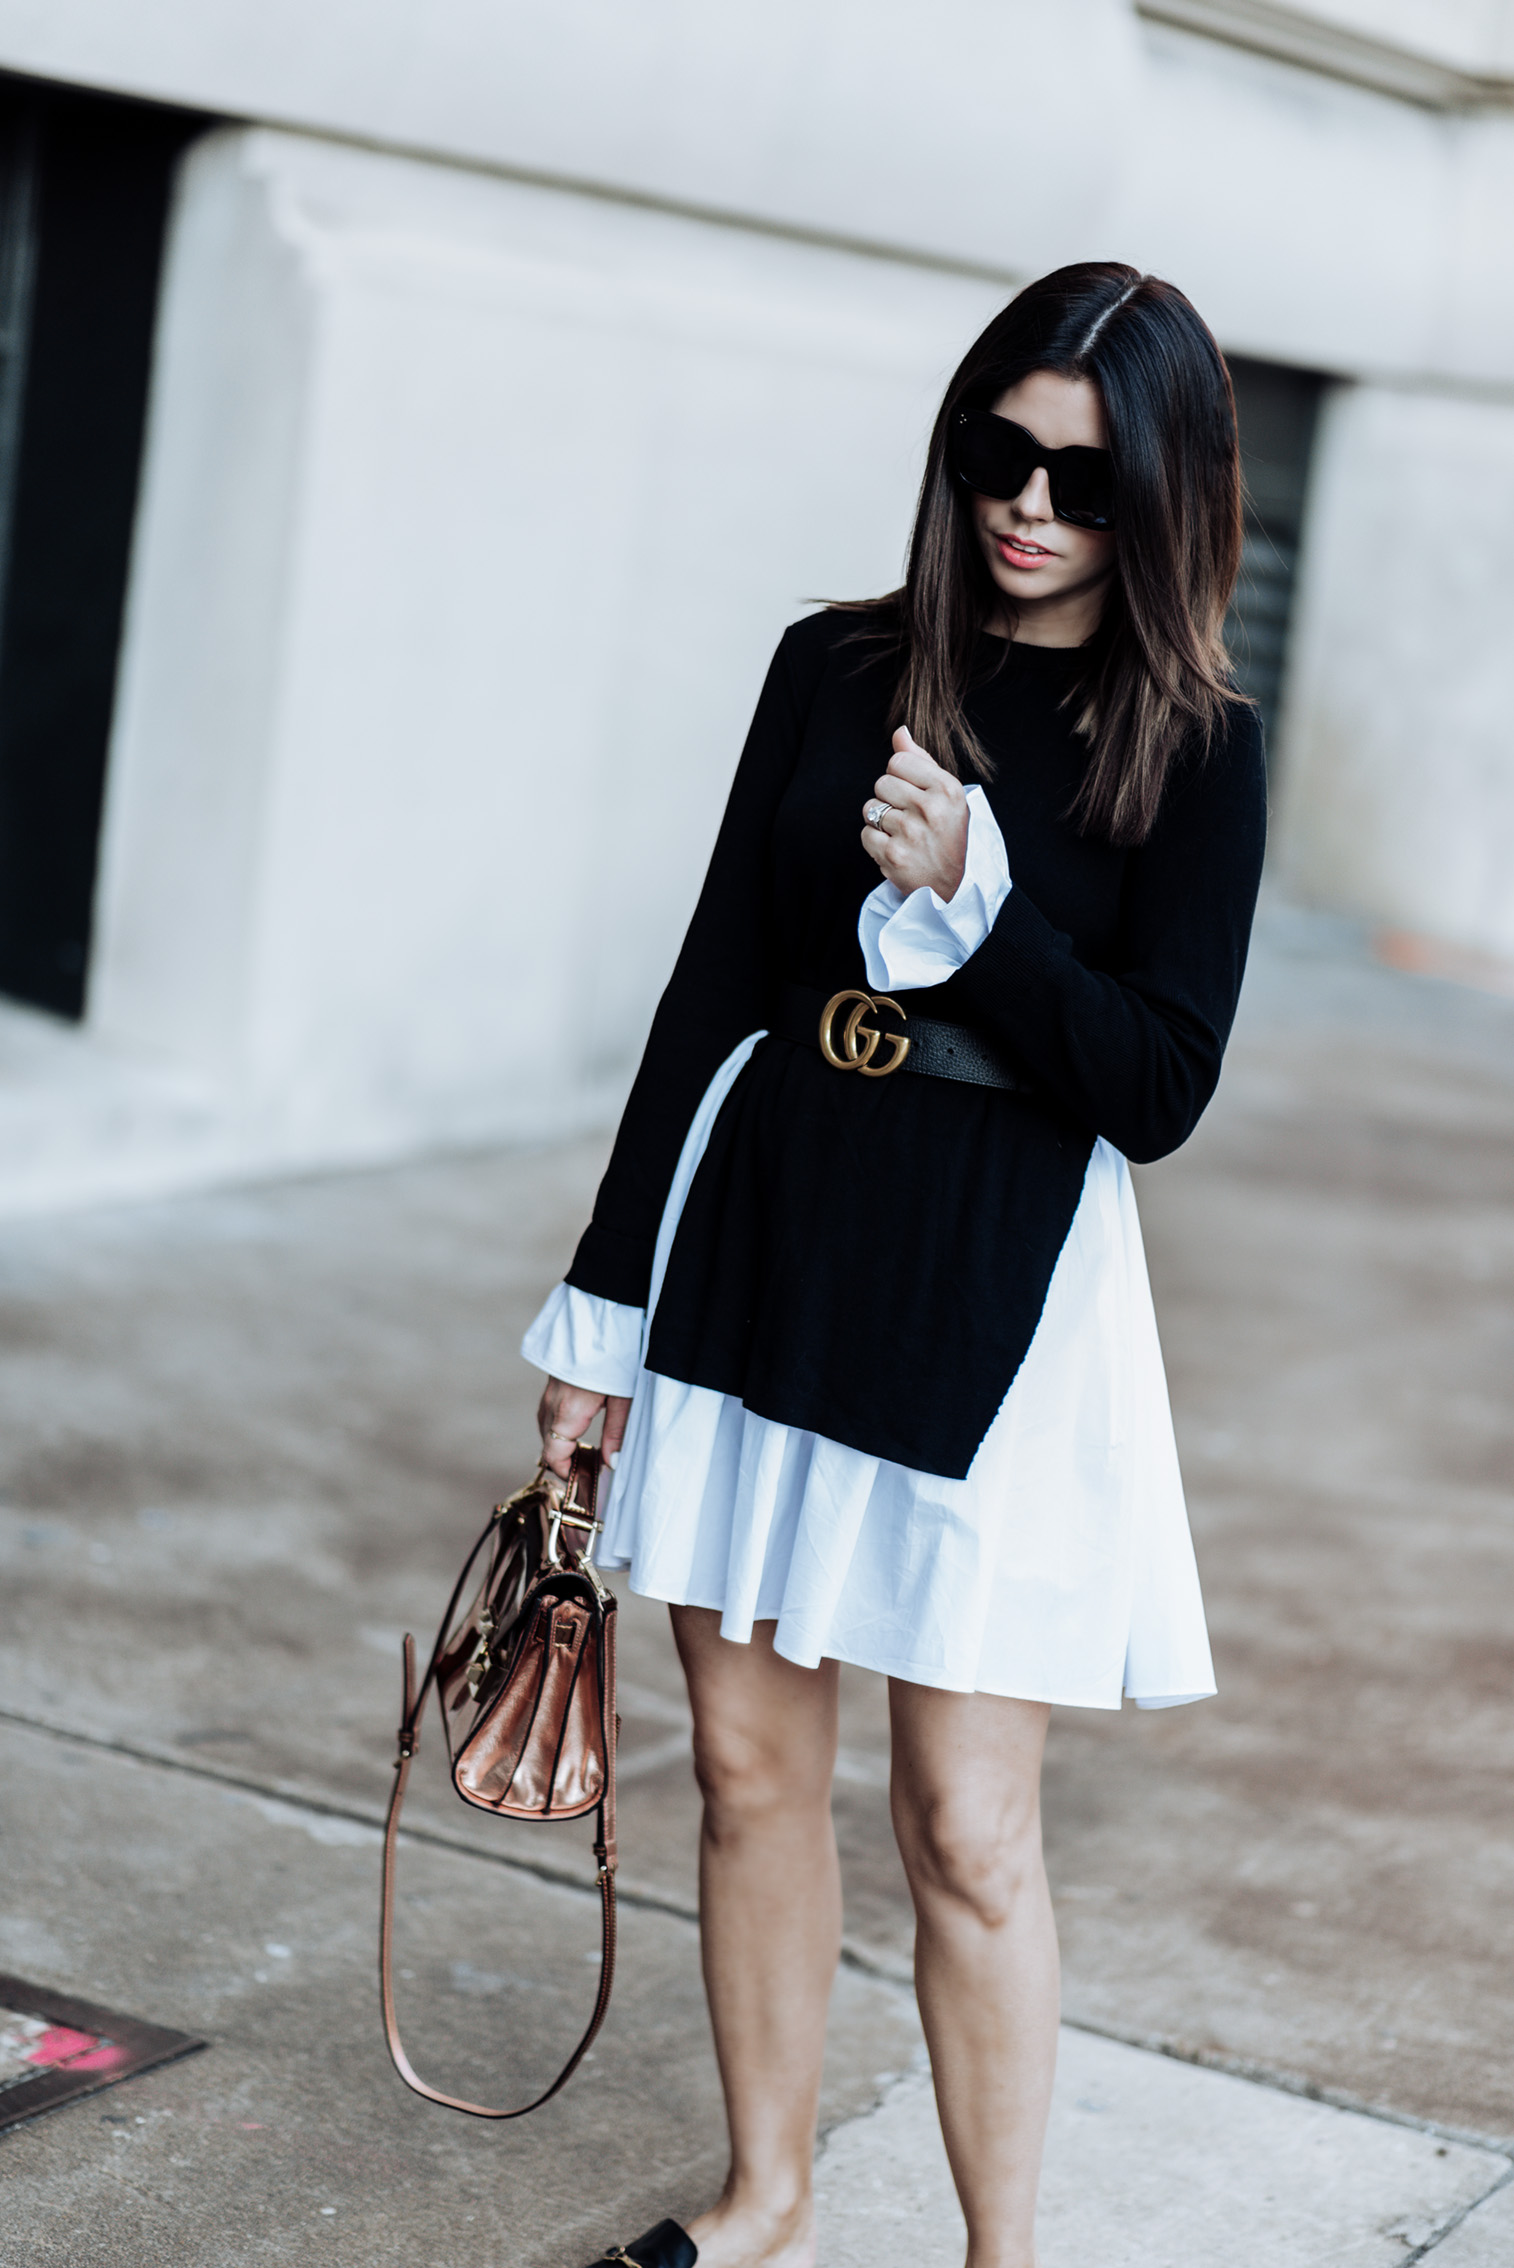 Click to shop the look. Houston fashion and style blogger | Black and white styles | English Factory Knit Combo Dress (Similar style here) | Rebecca Minkoff Mini Paris Crossbody | Similar Black Mule Slides | Gucci Double G belt (men's pebbled leather) |